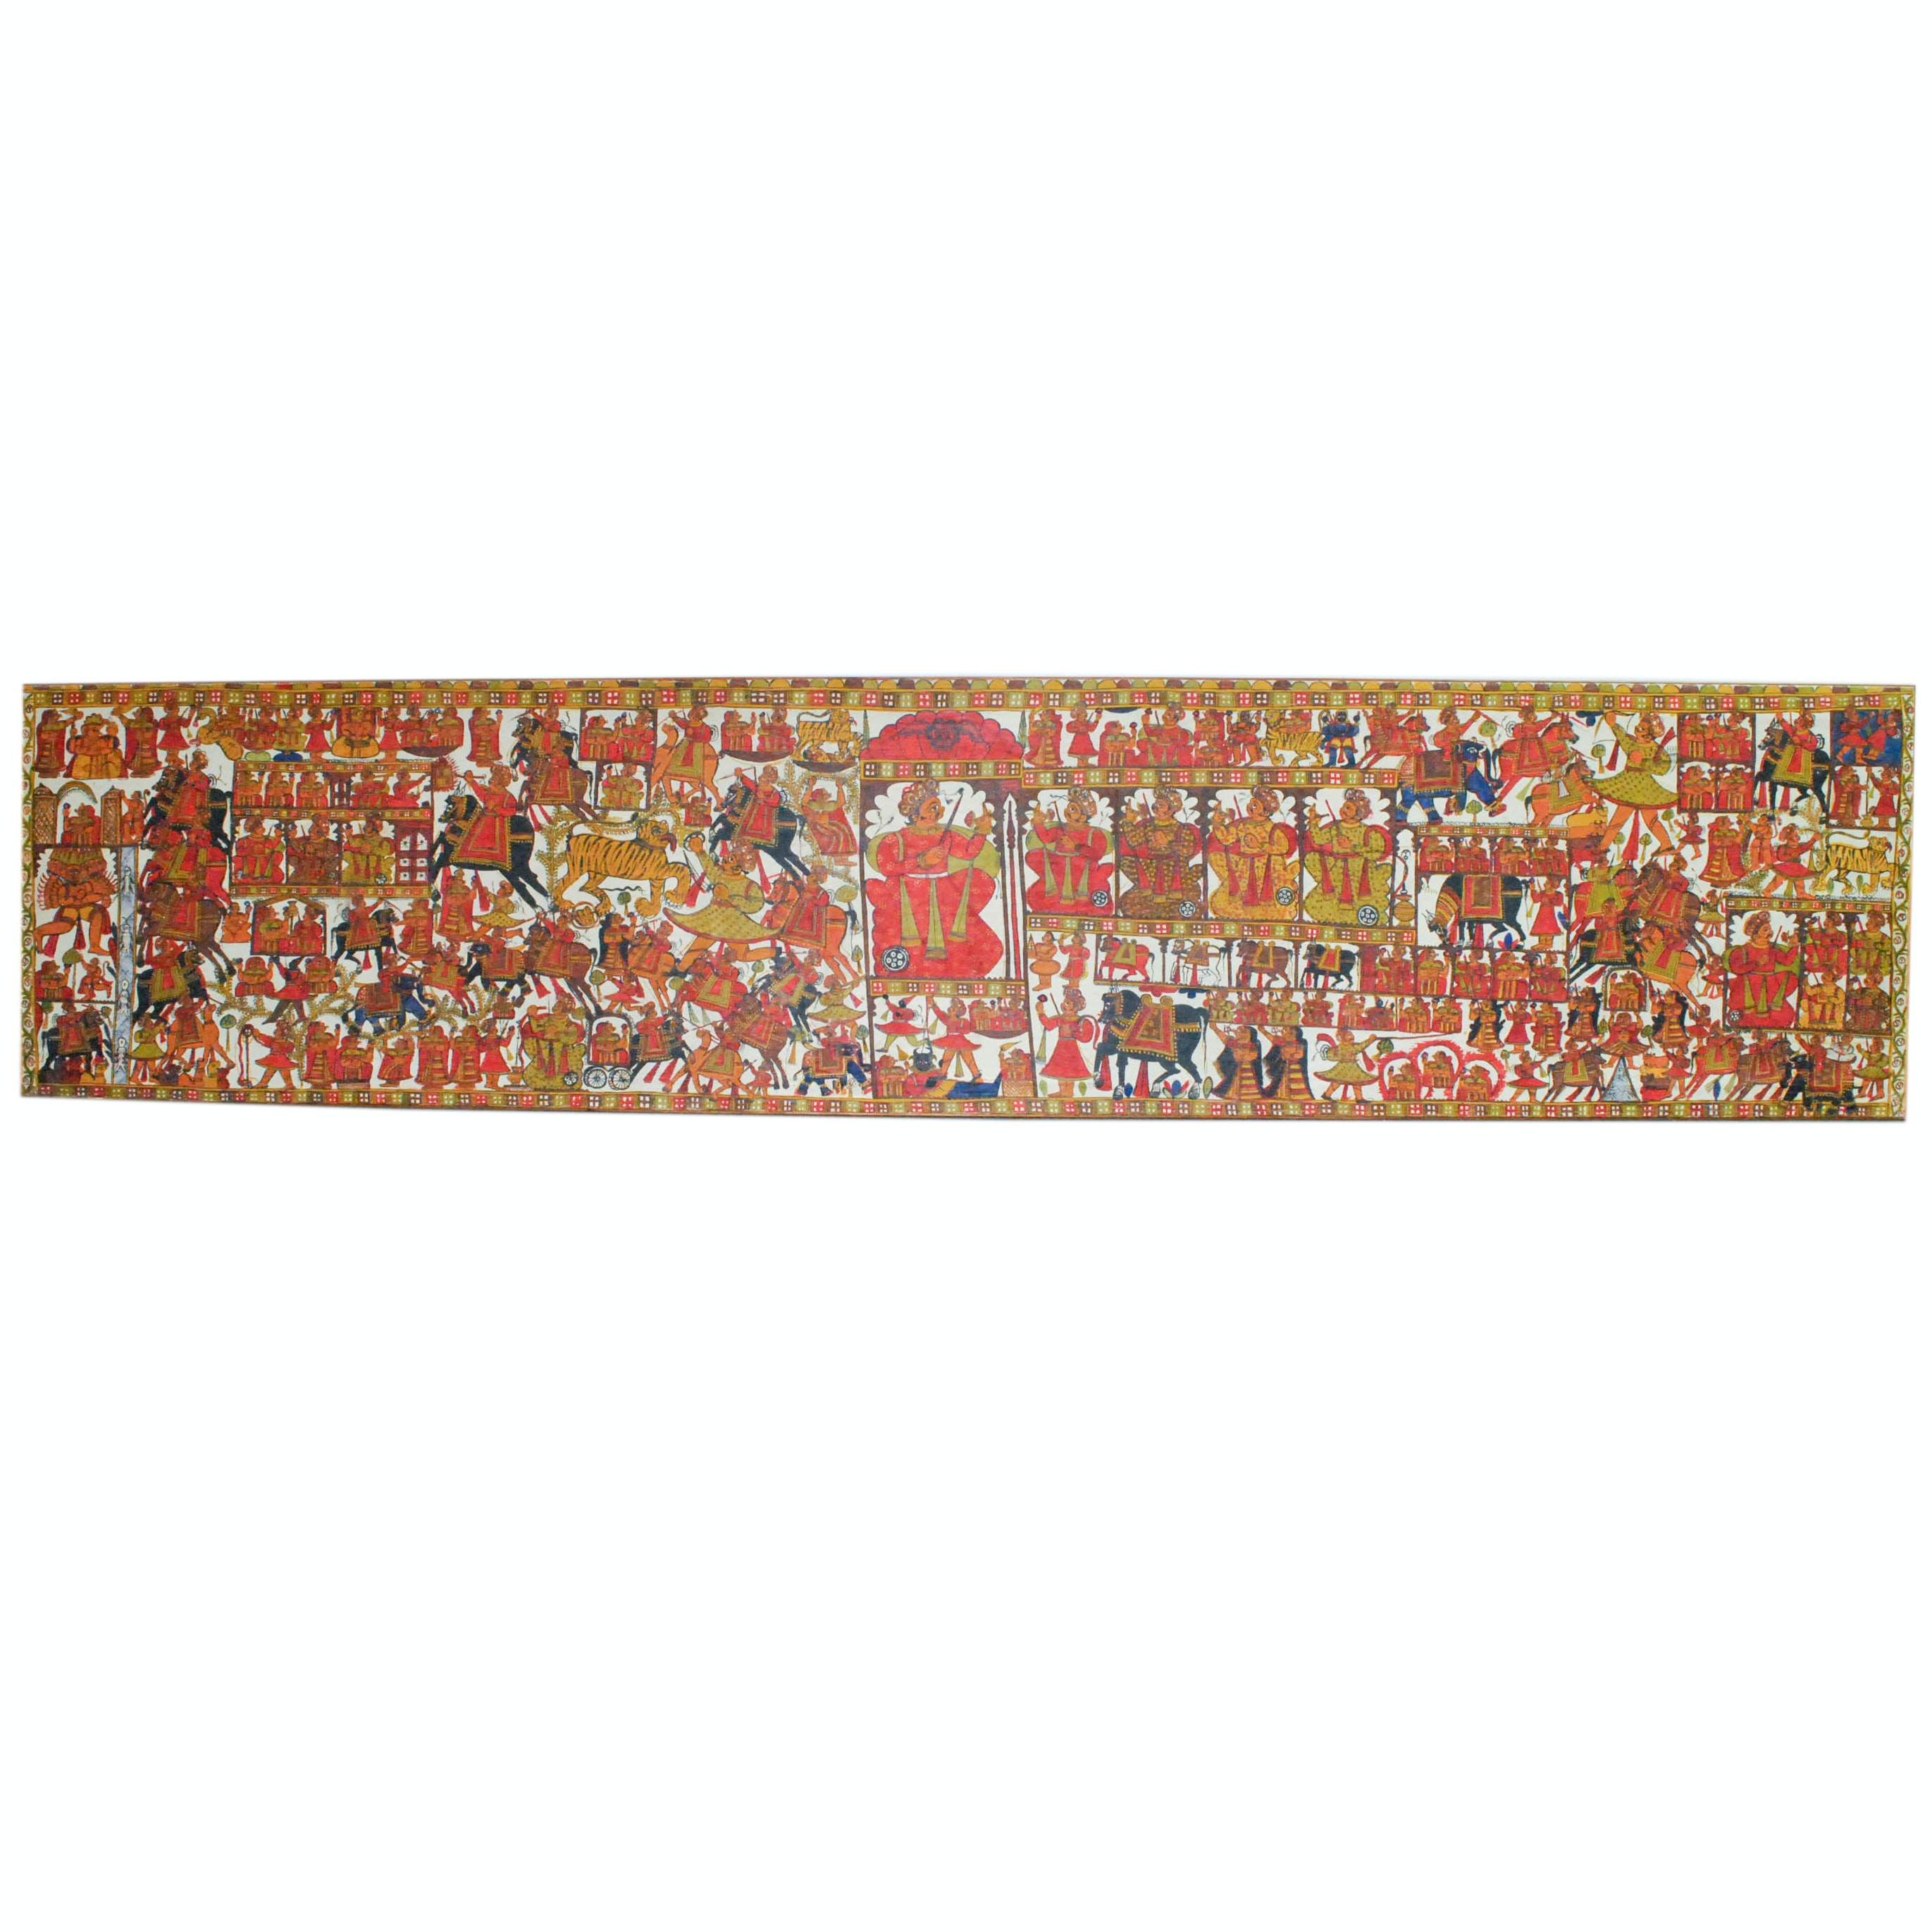 Framed Indian Phad Scroll Painting